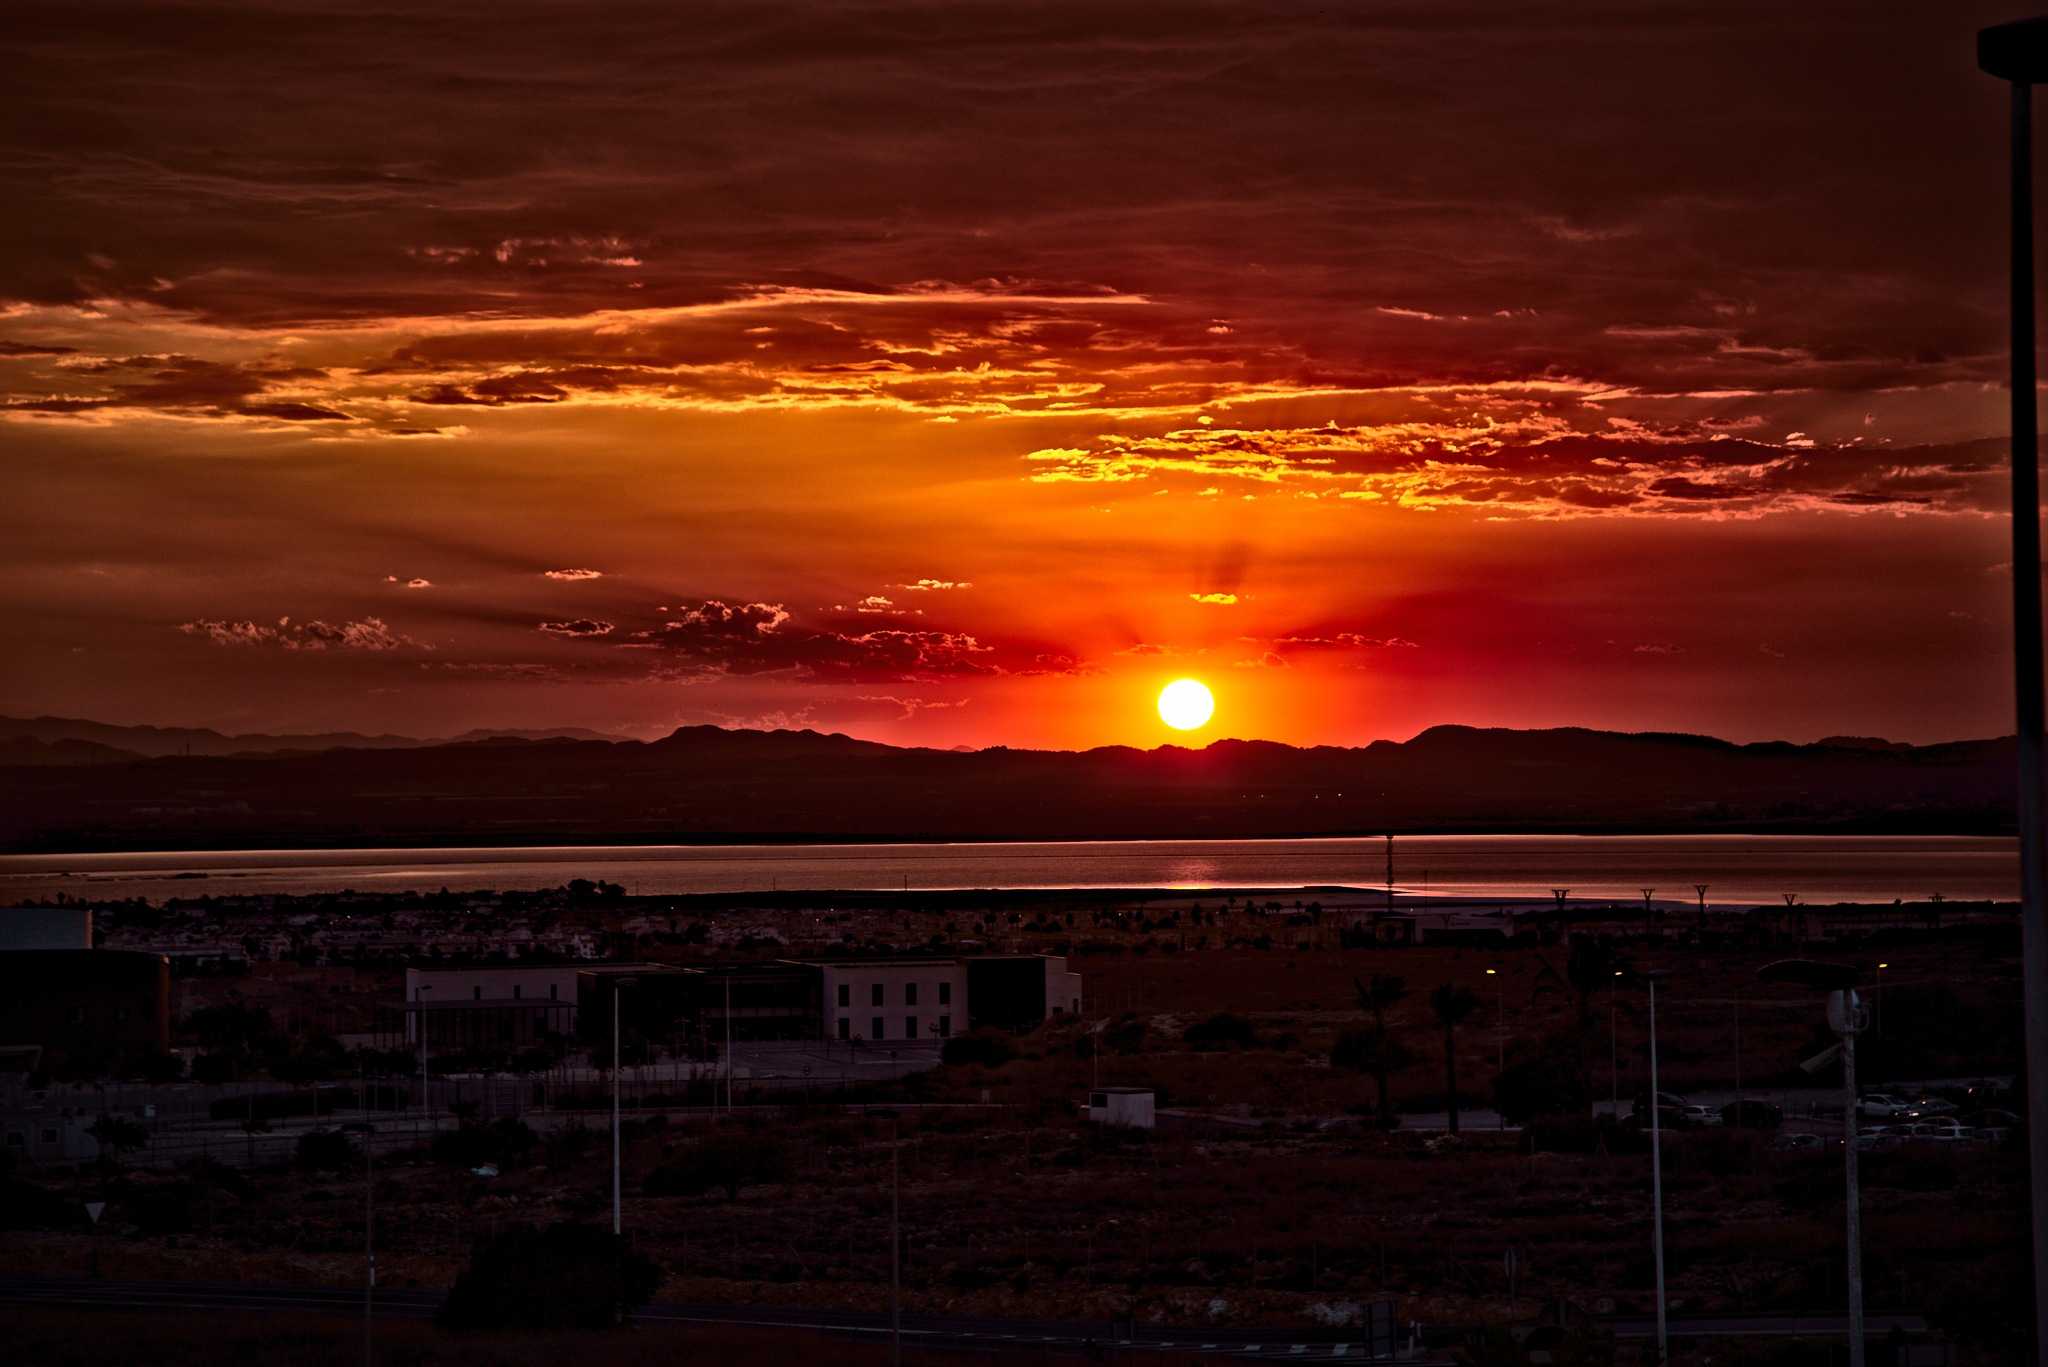 Sunset over Torrevieja saltlake by Anders Weinberg